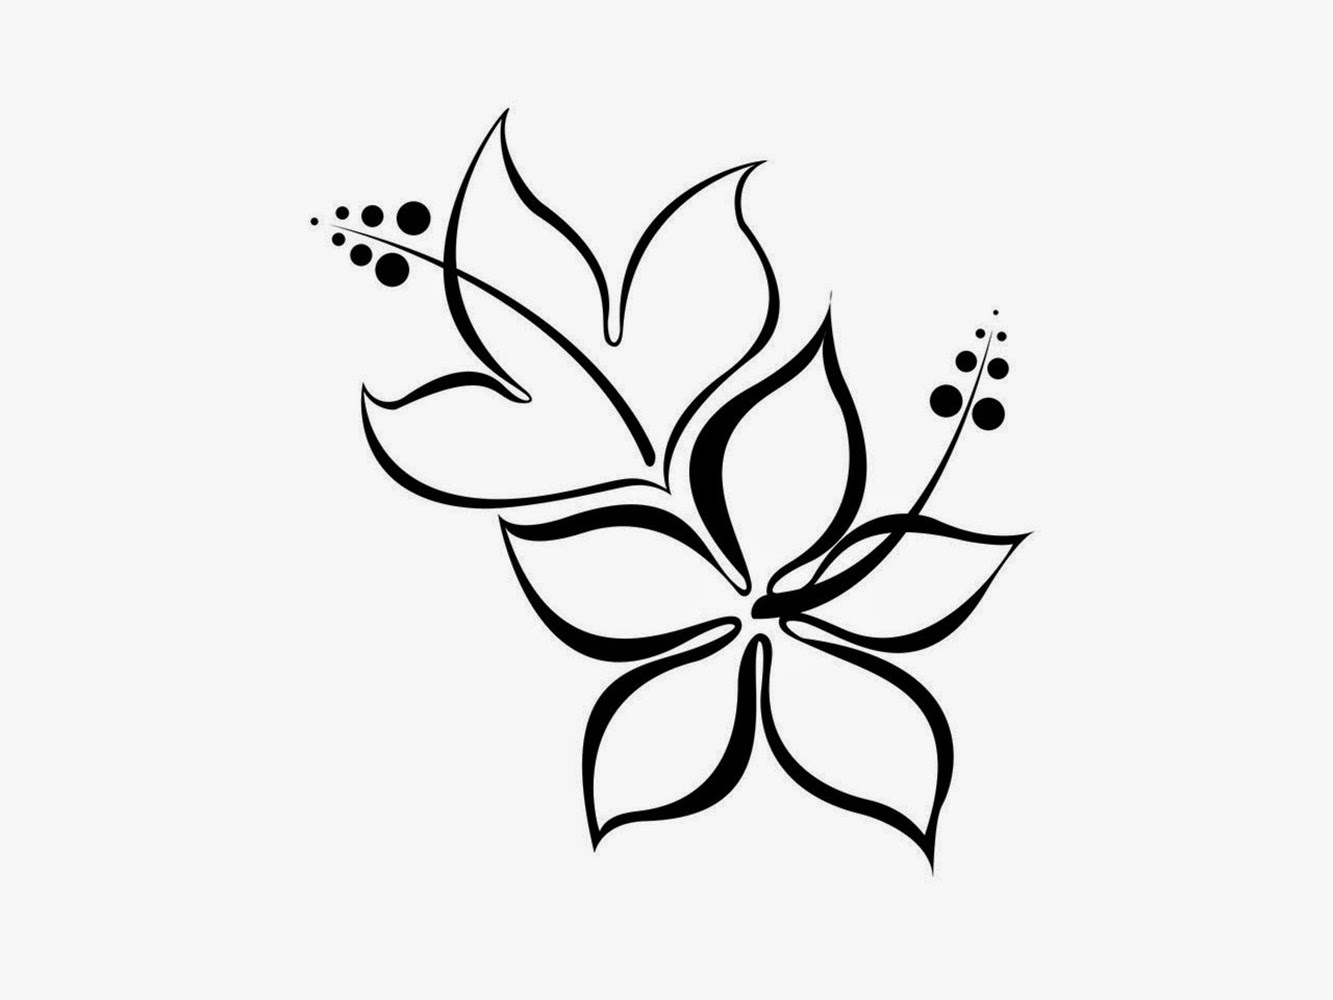 Free Simple Flower Designs Black And White, Download Free.